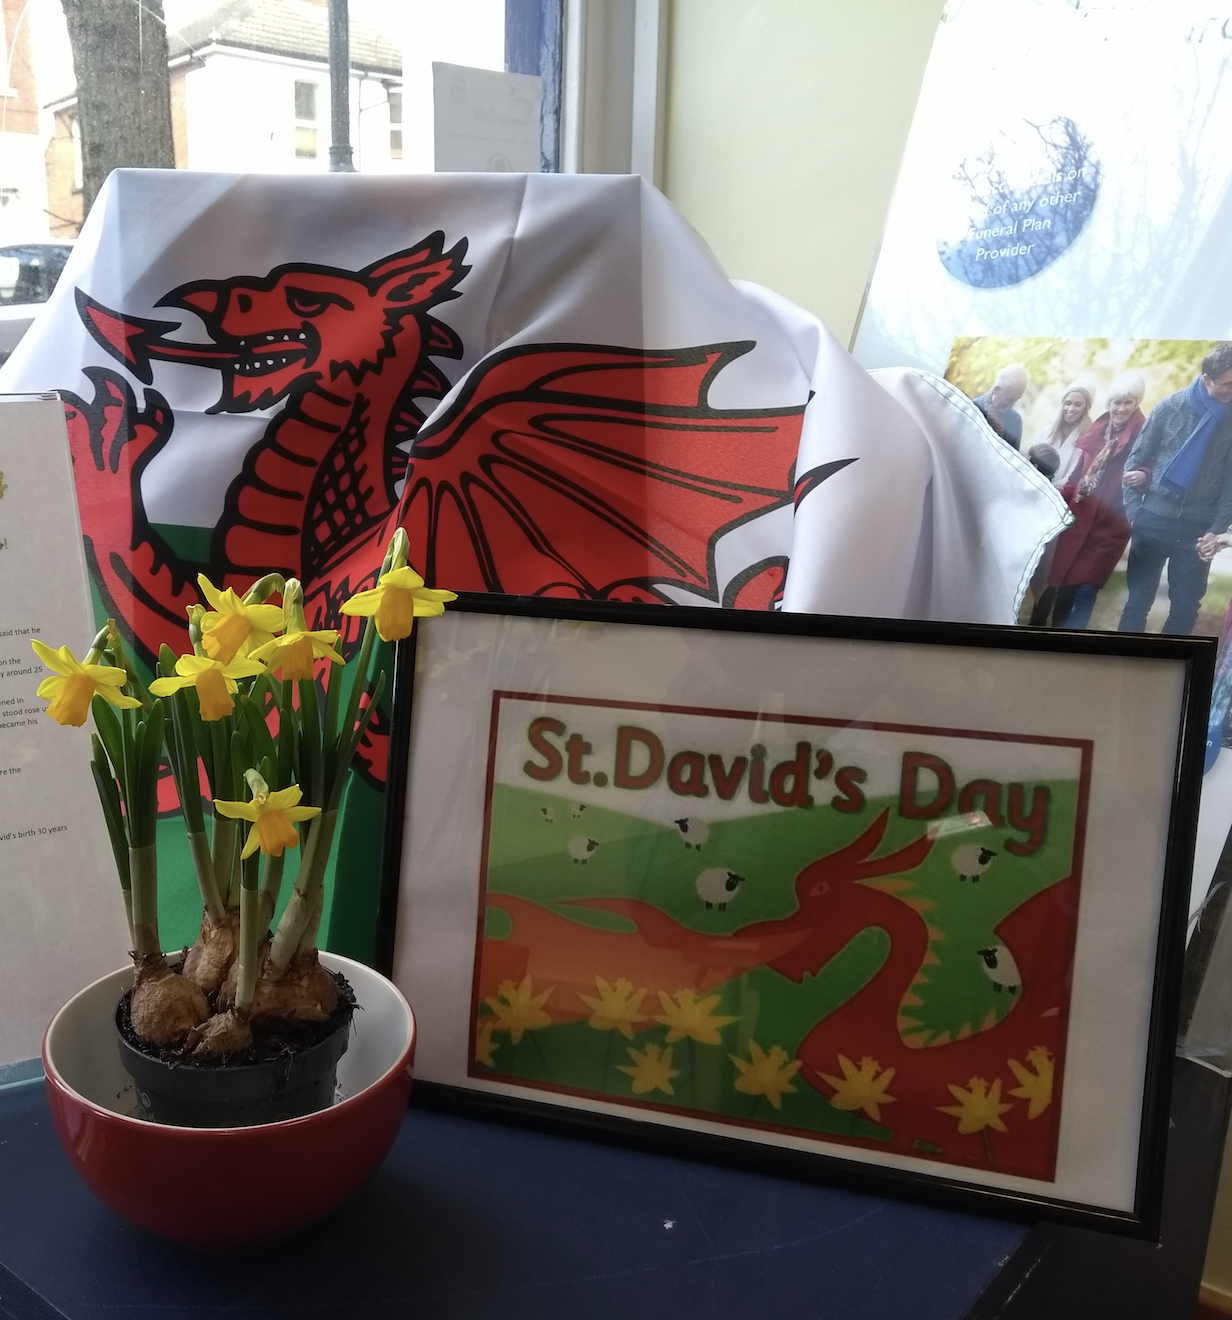 St David's Day Display at Molesey Branch